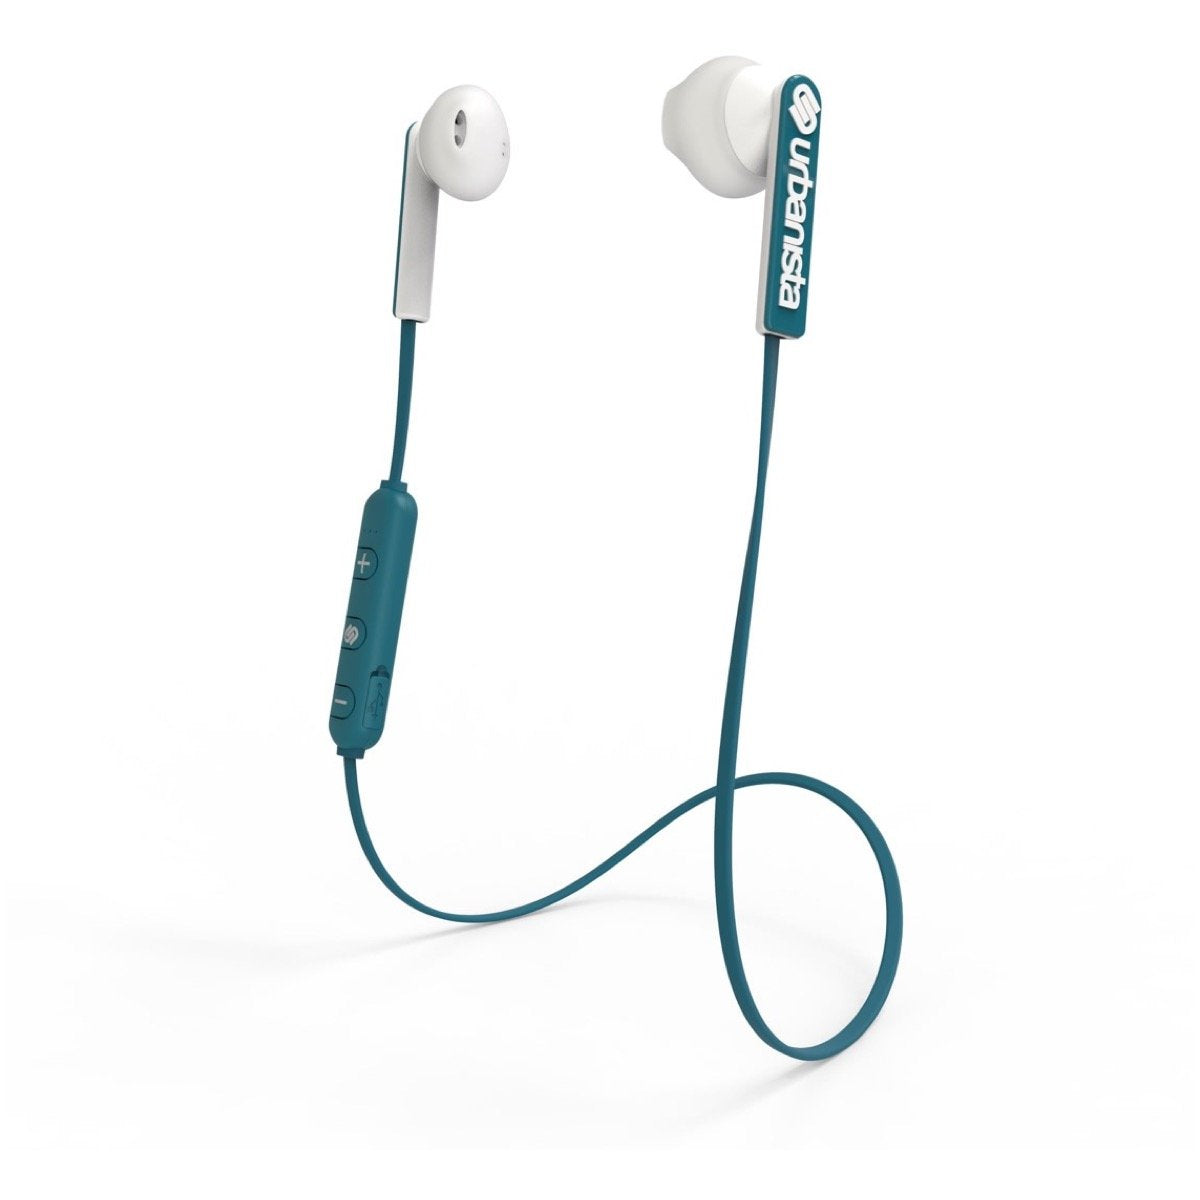 Urbanista Berlin Bluetooth Earphones - Petroleum [Accessories]